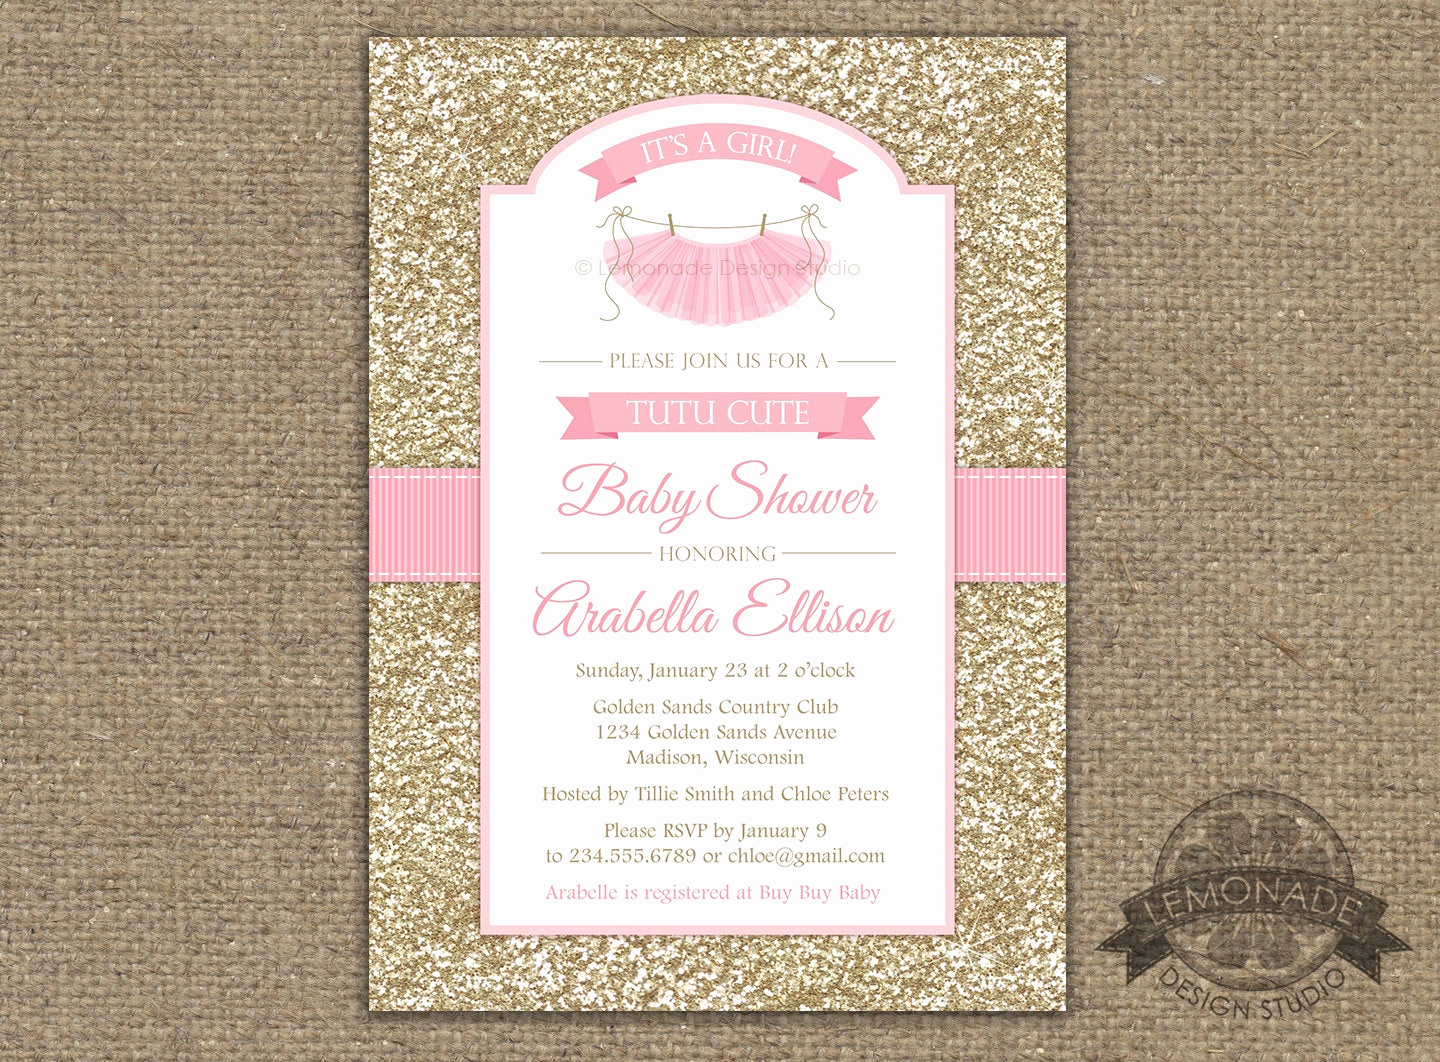 Tutu Baby Shower Invitation Fresh Tutu Cute Baby Shower Invitation Gold Pink Baby Shower